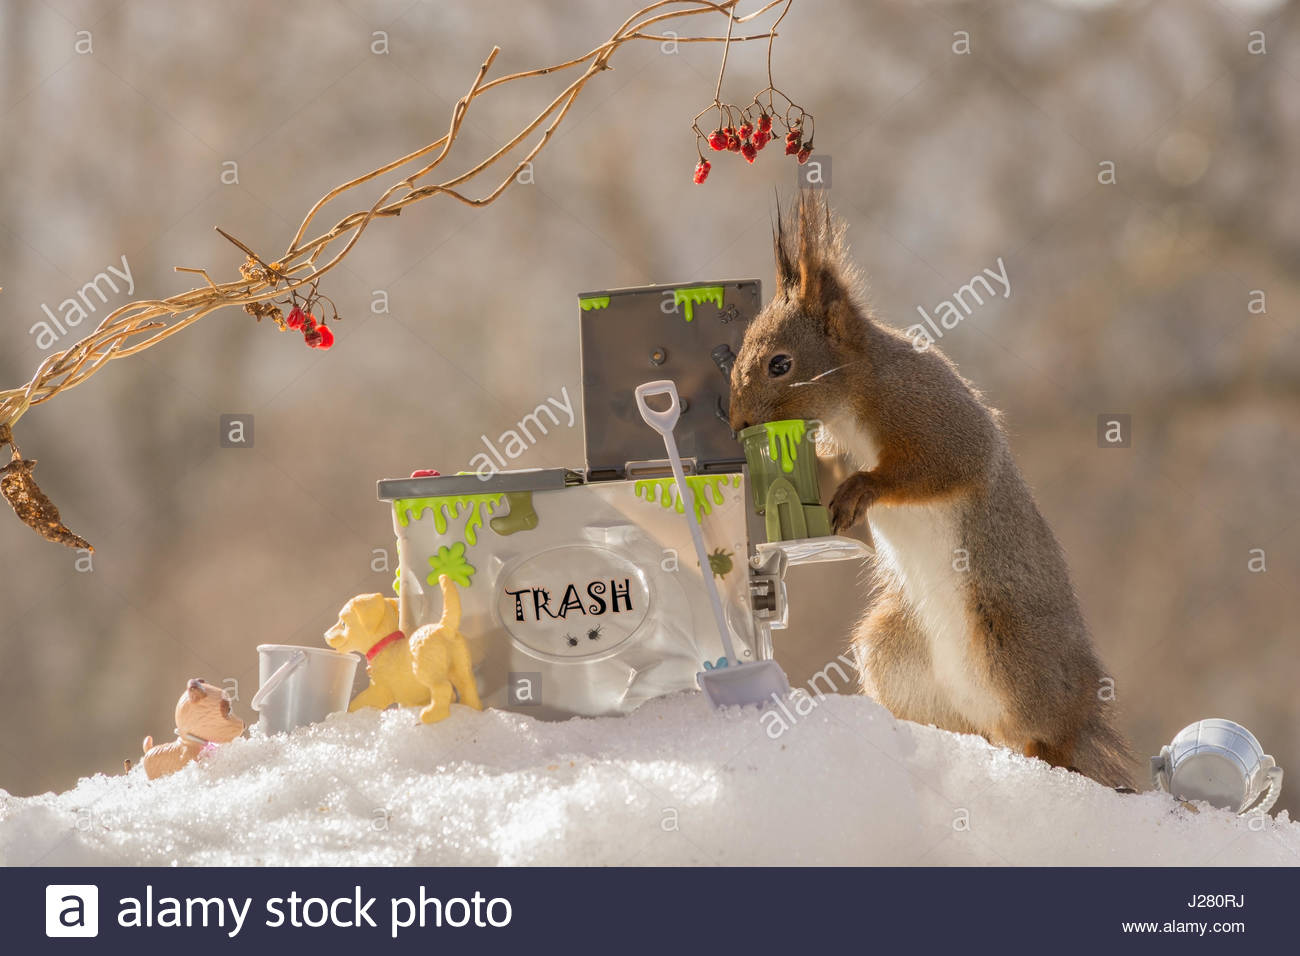 profile and close up of red squirrel standing eating out of a trash can - Stock Image